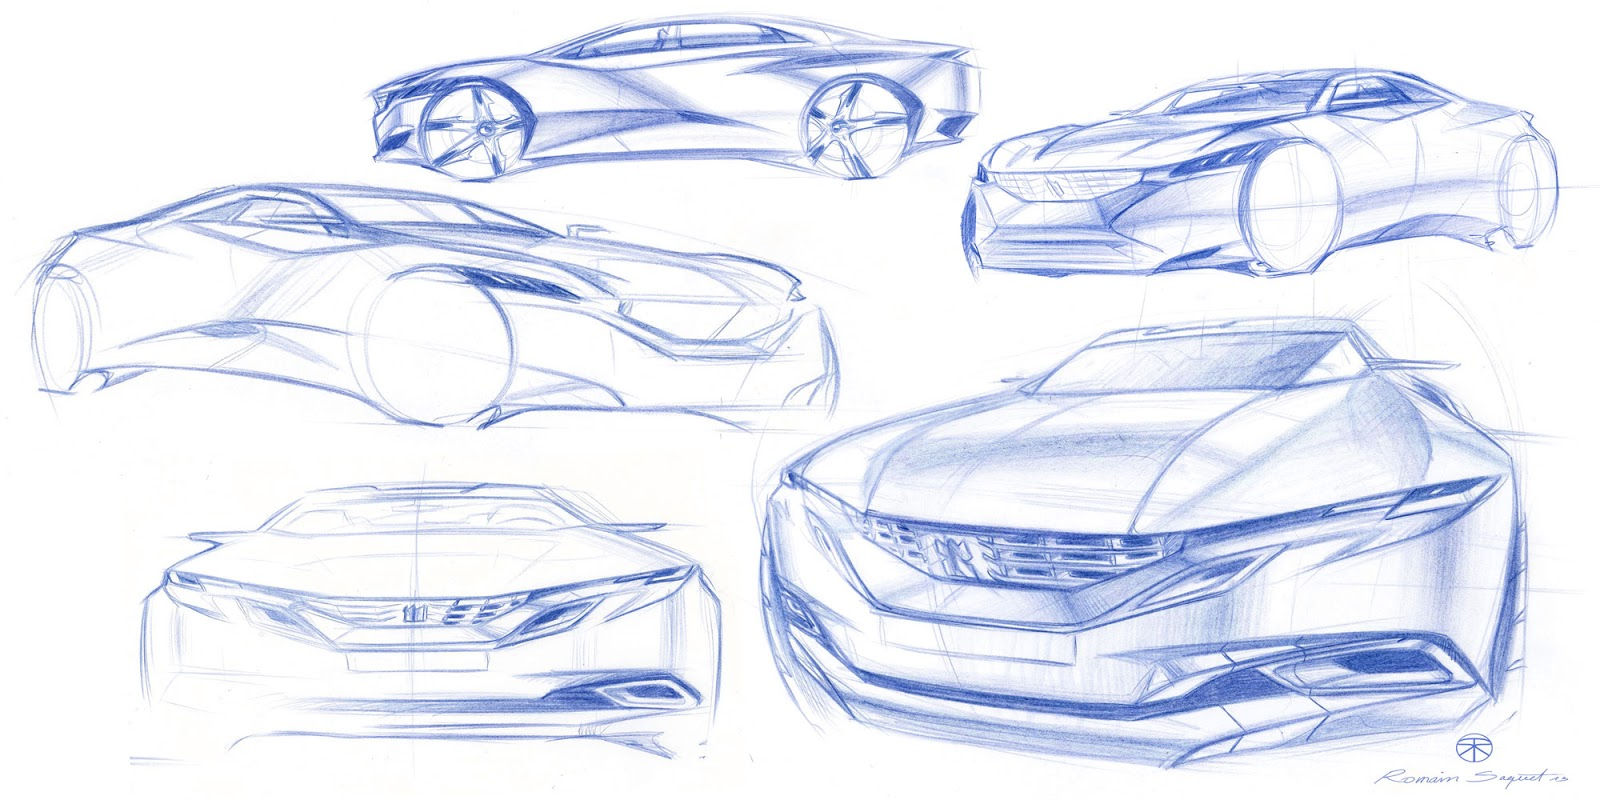 Peugeot Exalt concept pencil sketches by Romain Saquet